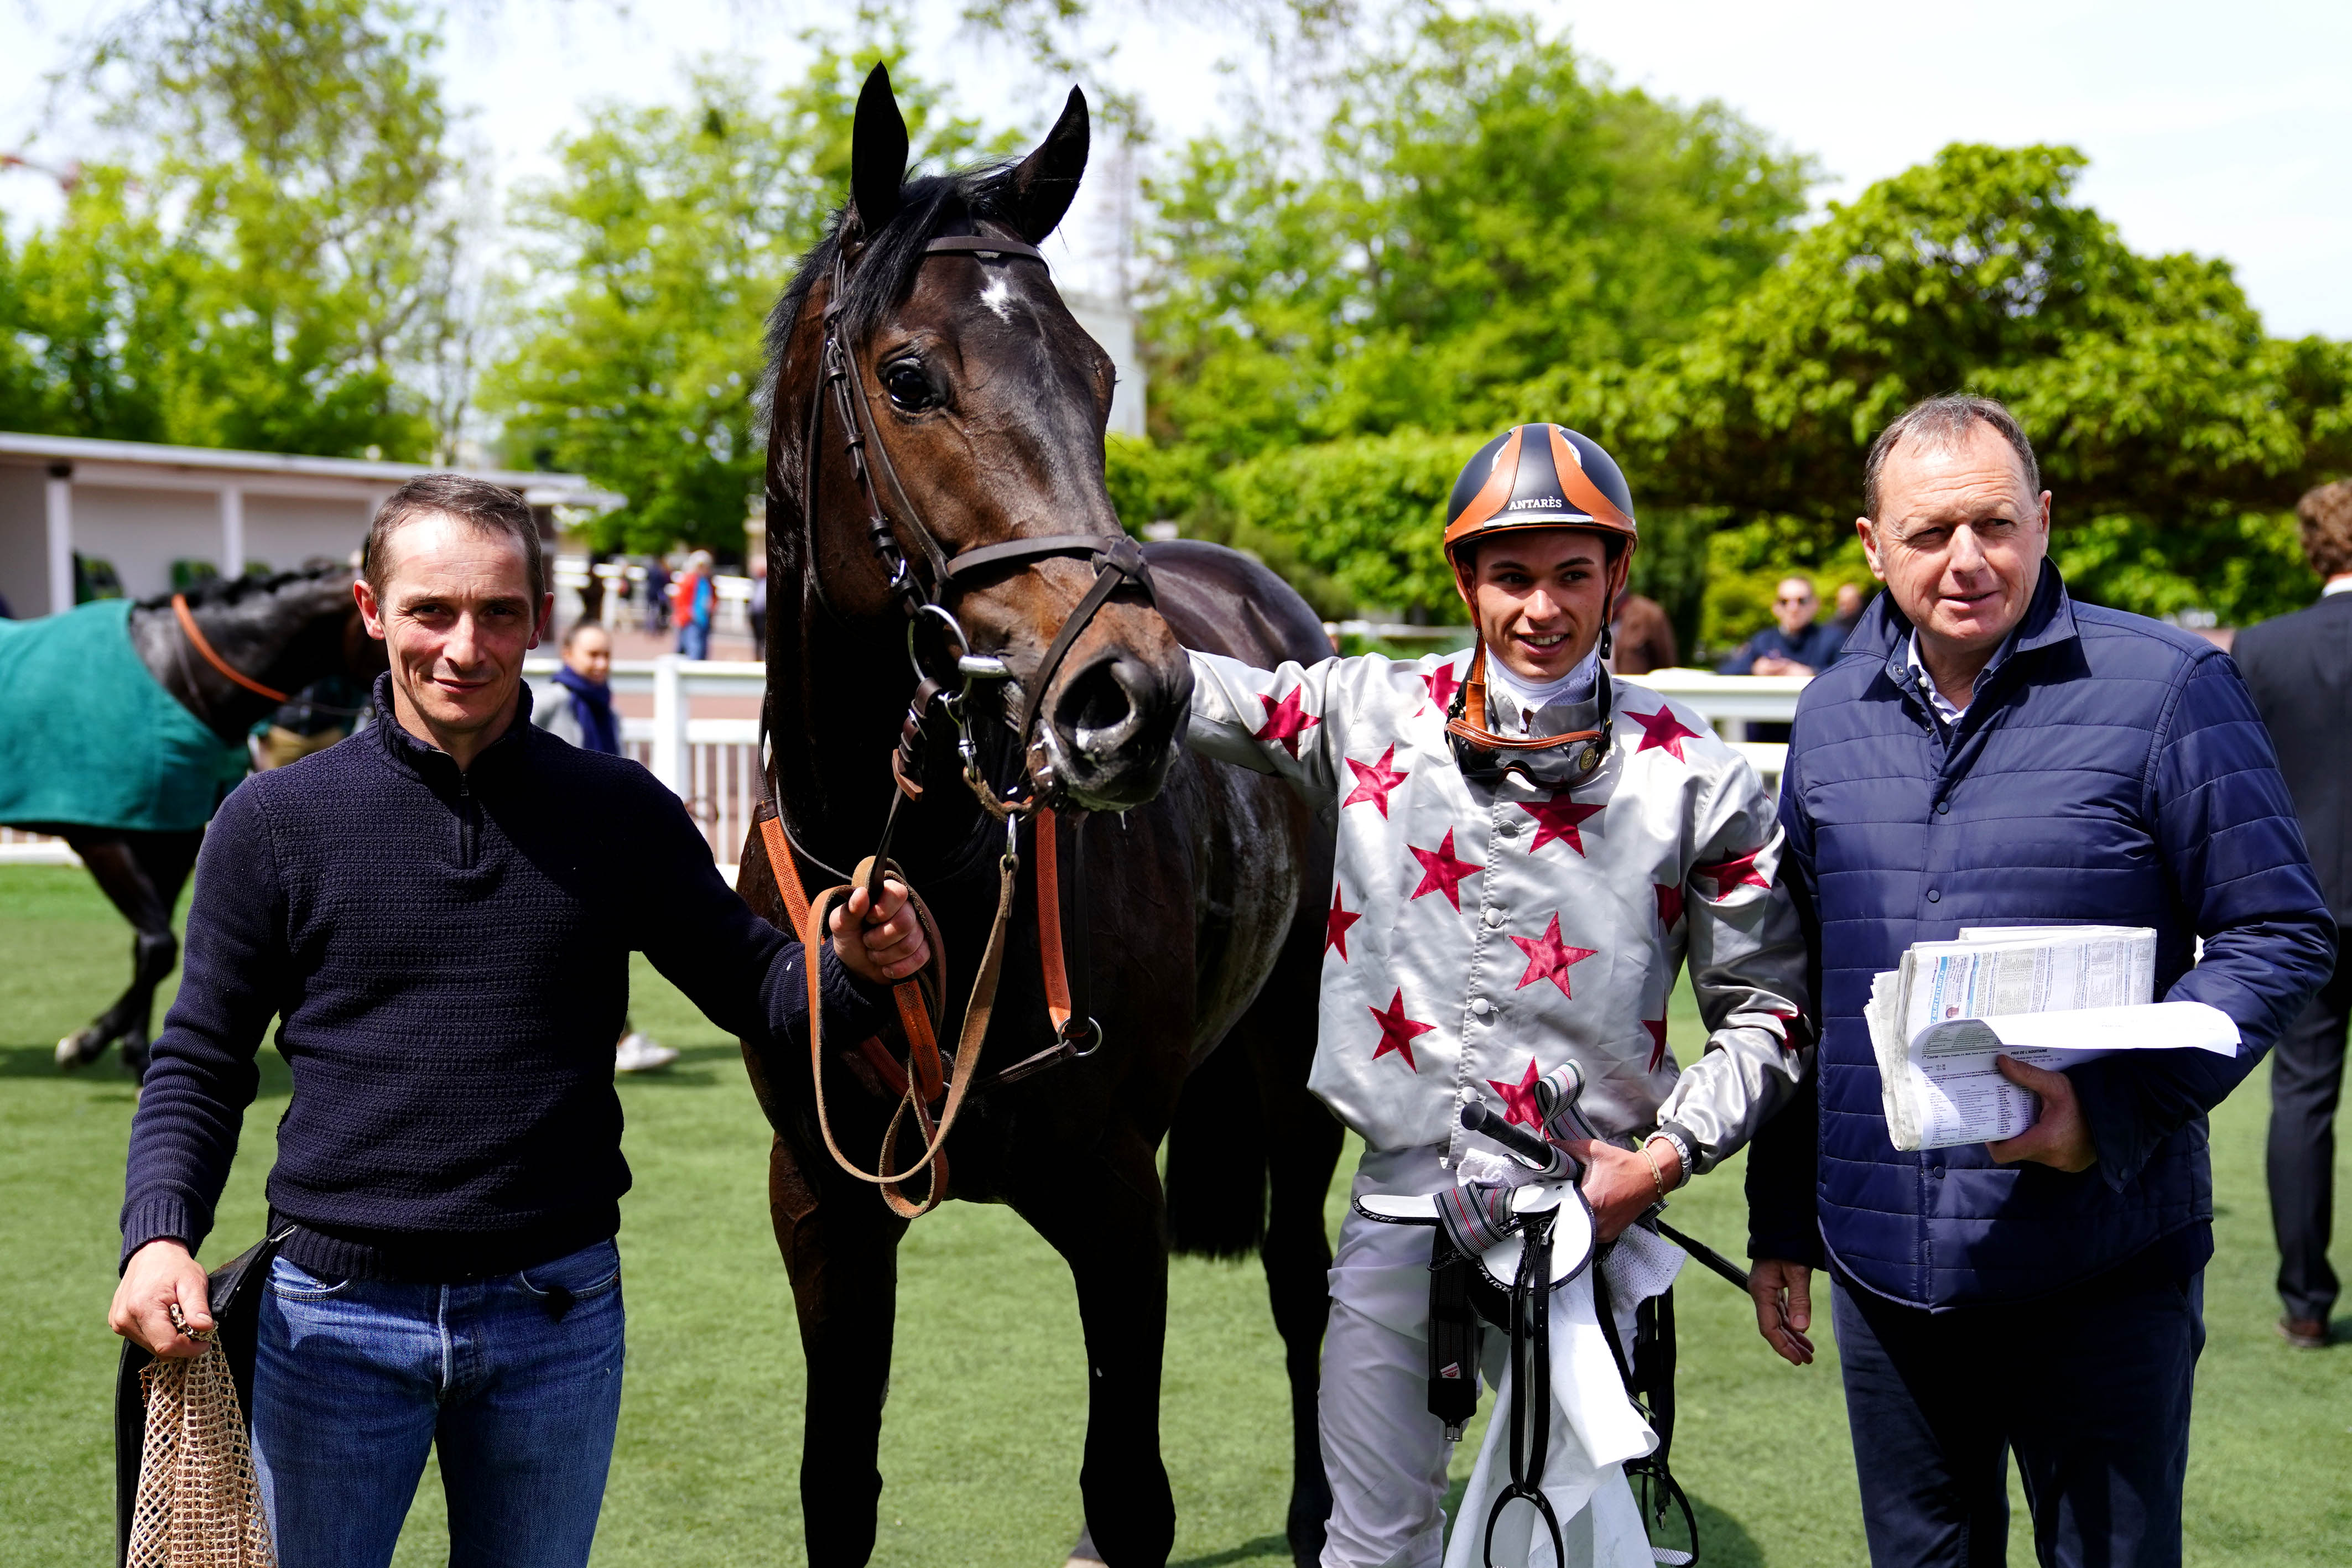 Prix de l'Association des Jockeys - Angelo Busson remporte la course Afasec de Saint-Cloud